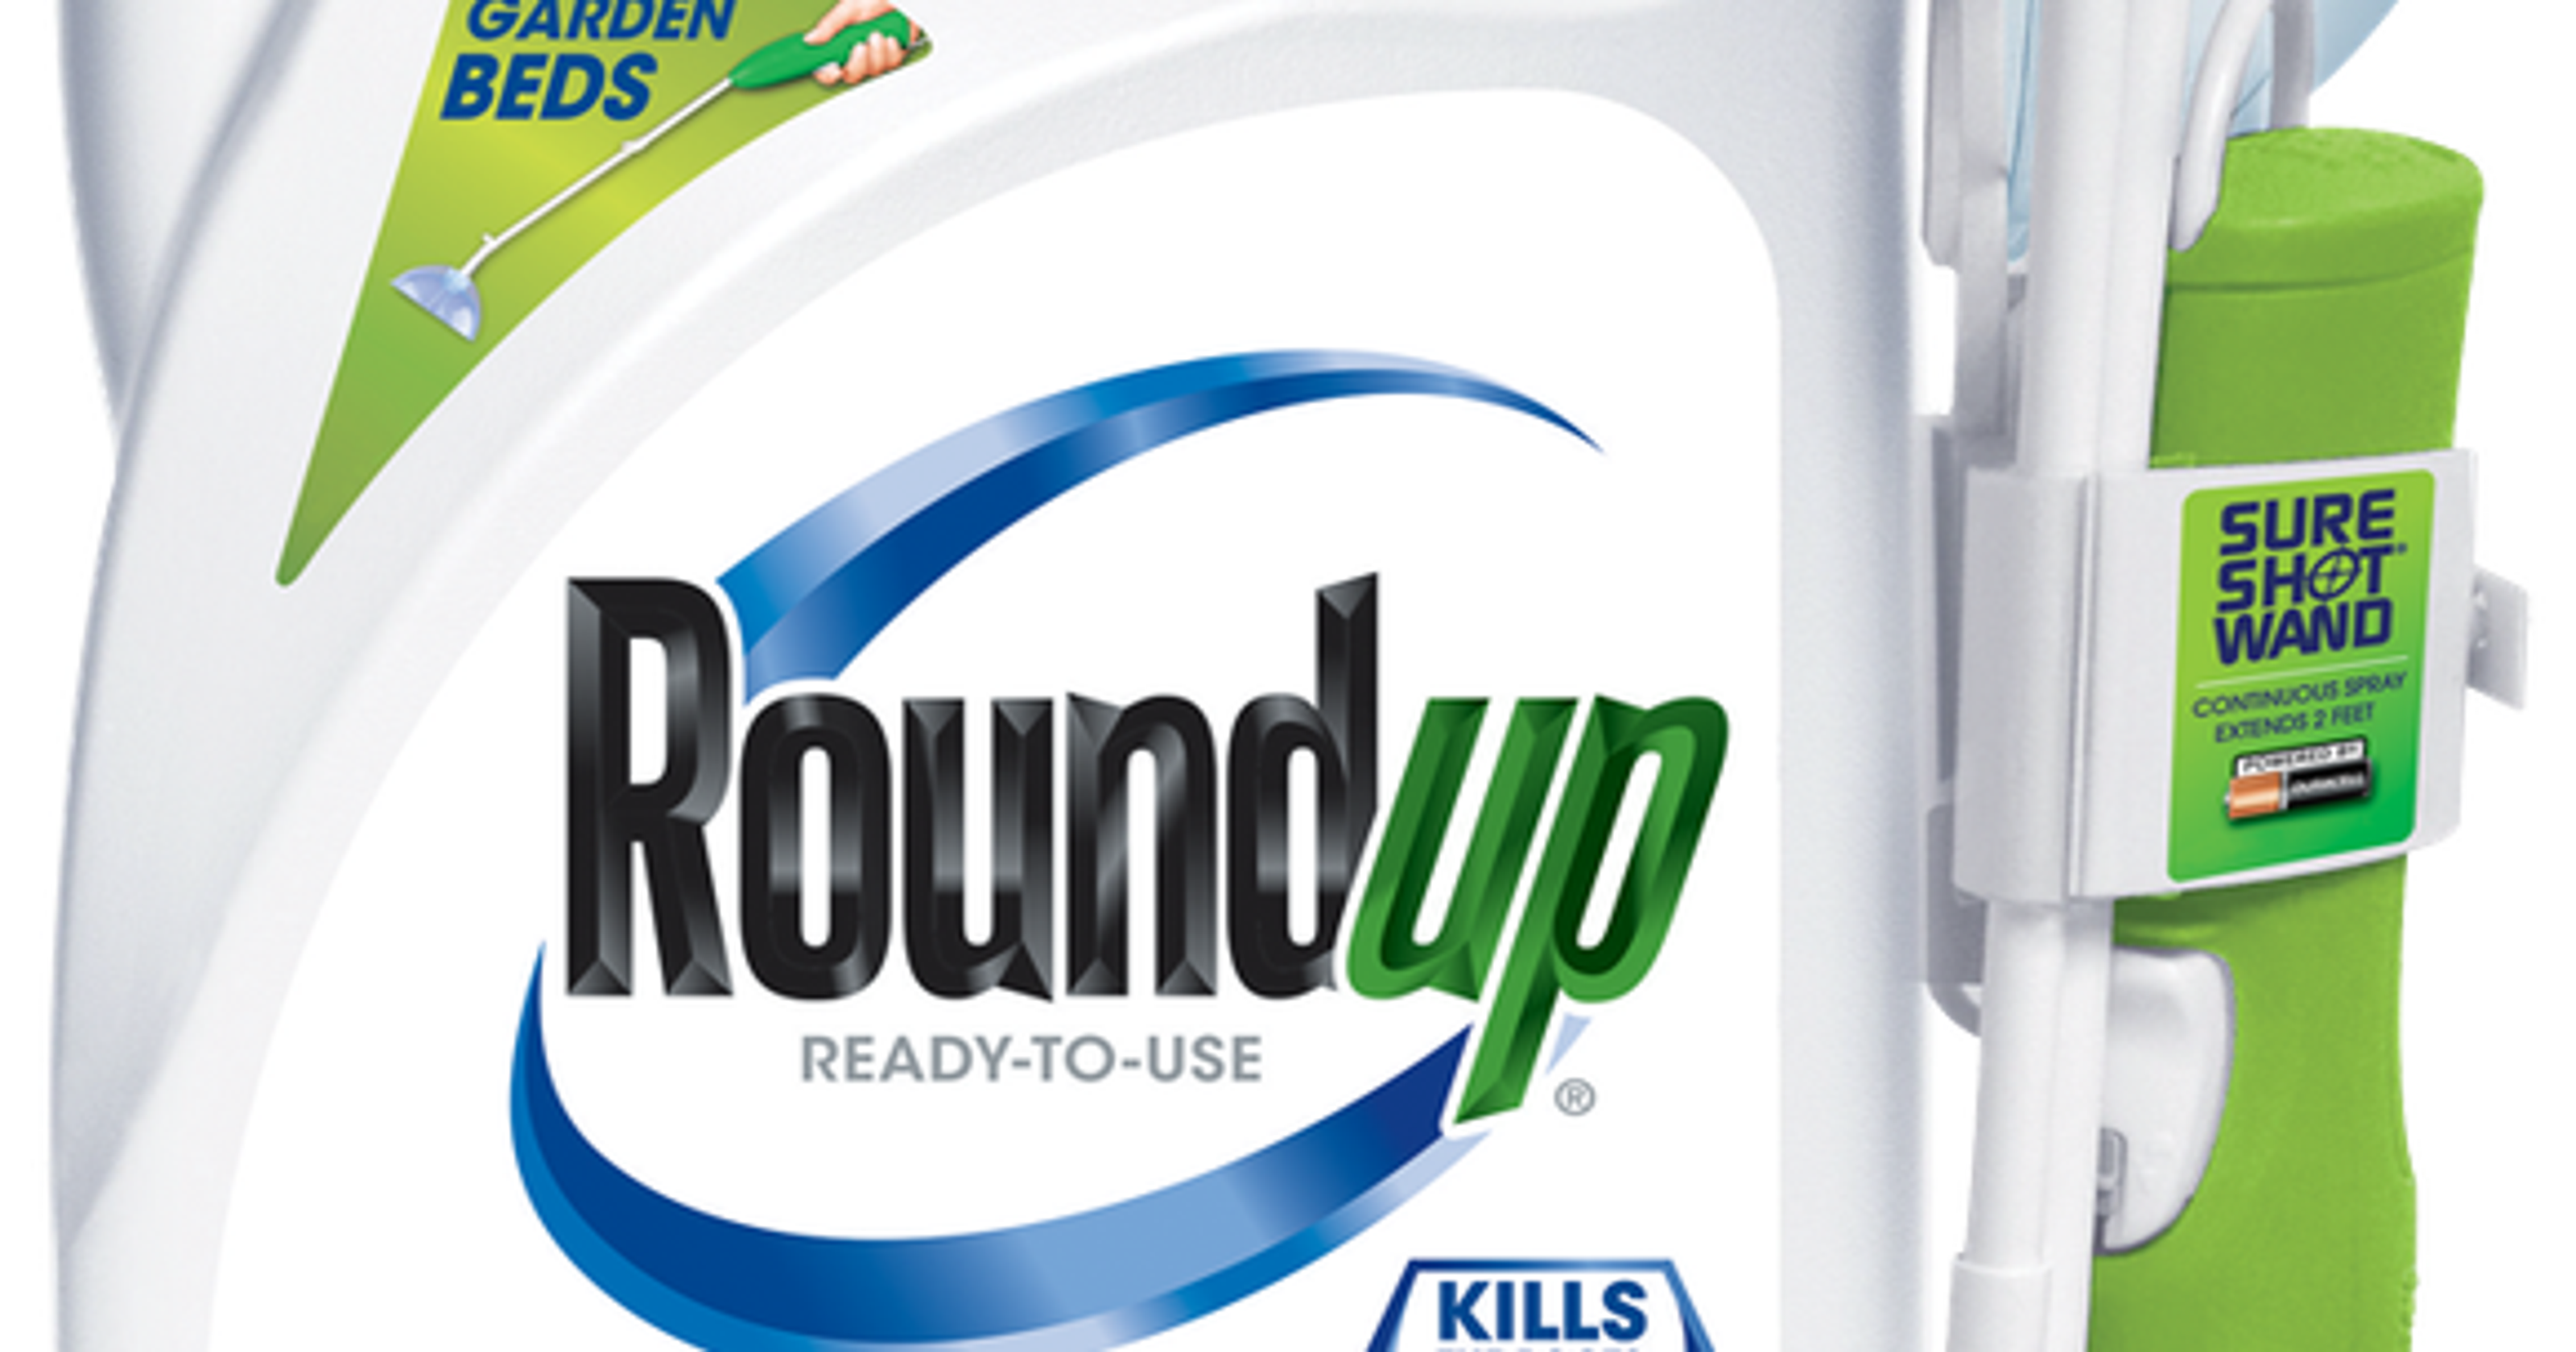 Monsanto ordered to pay $289 million to cancer patient in